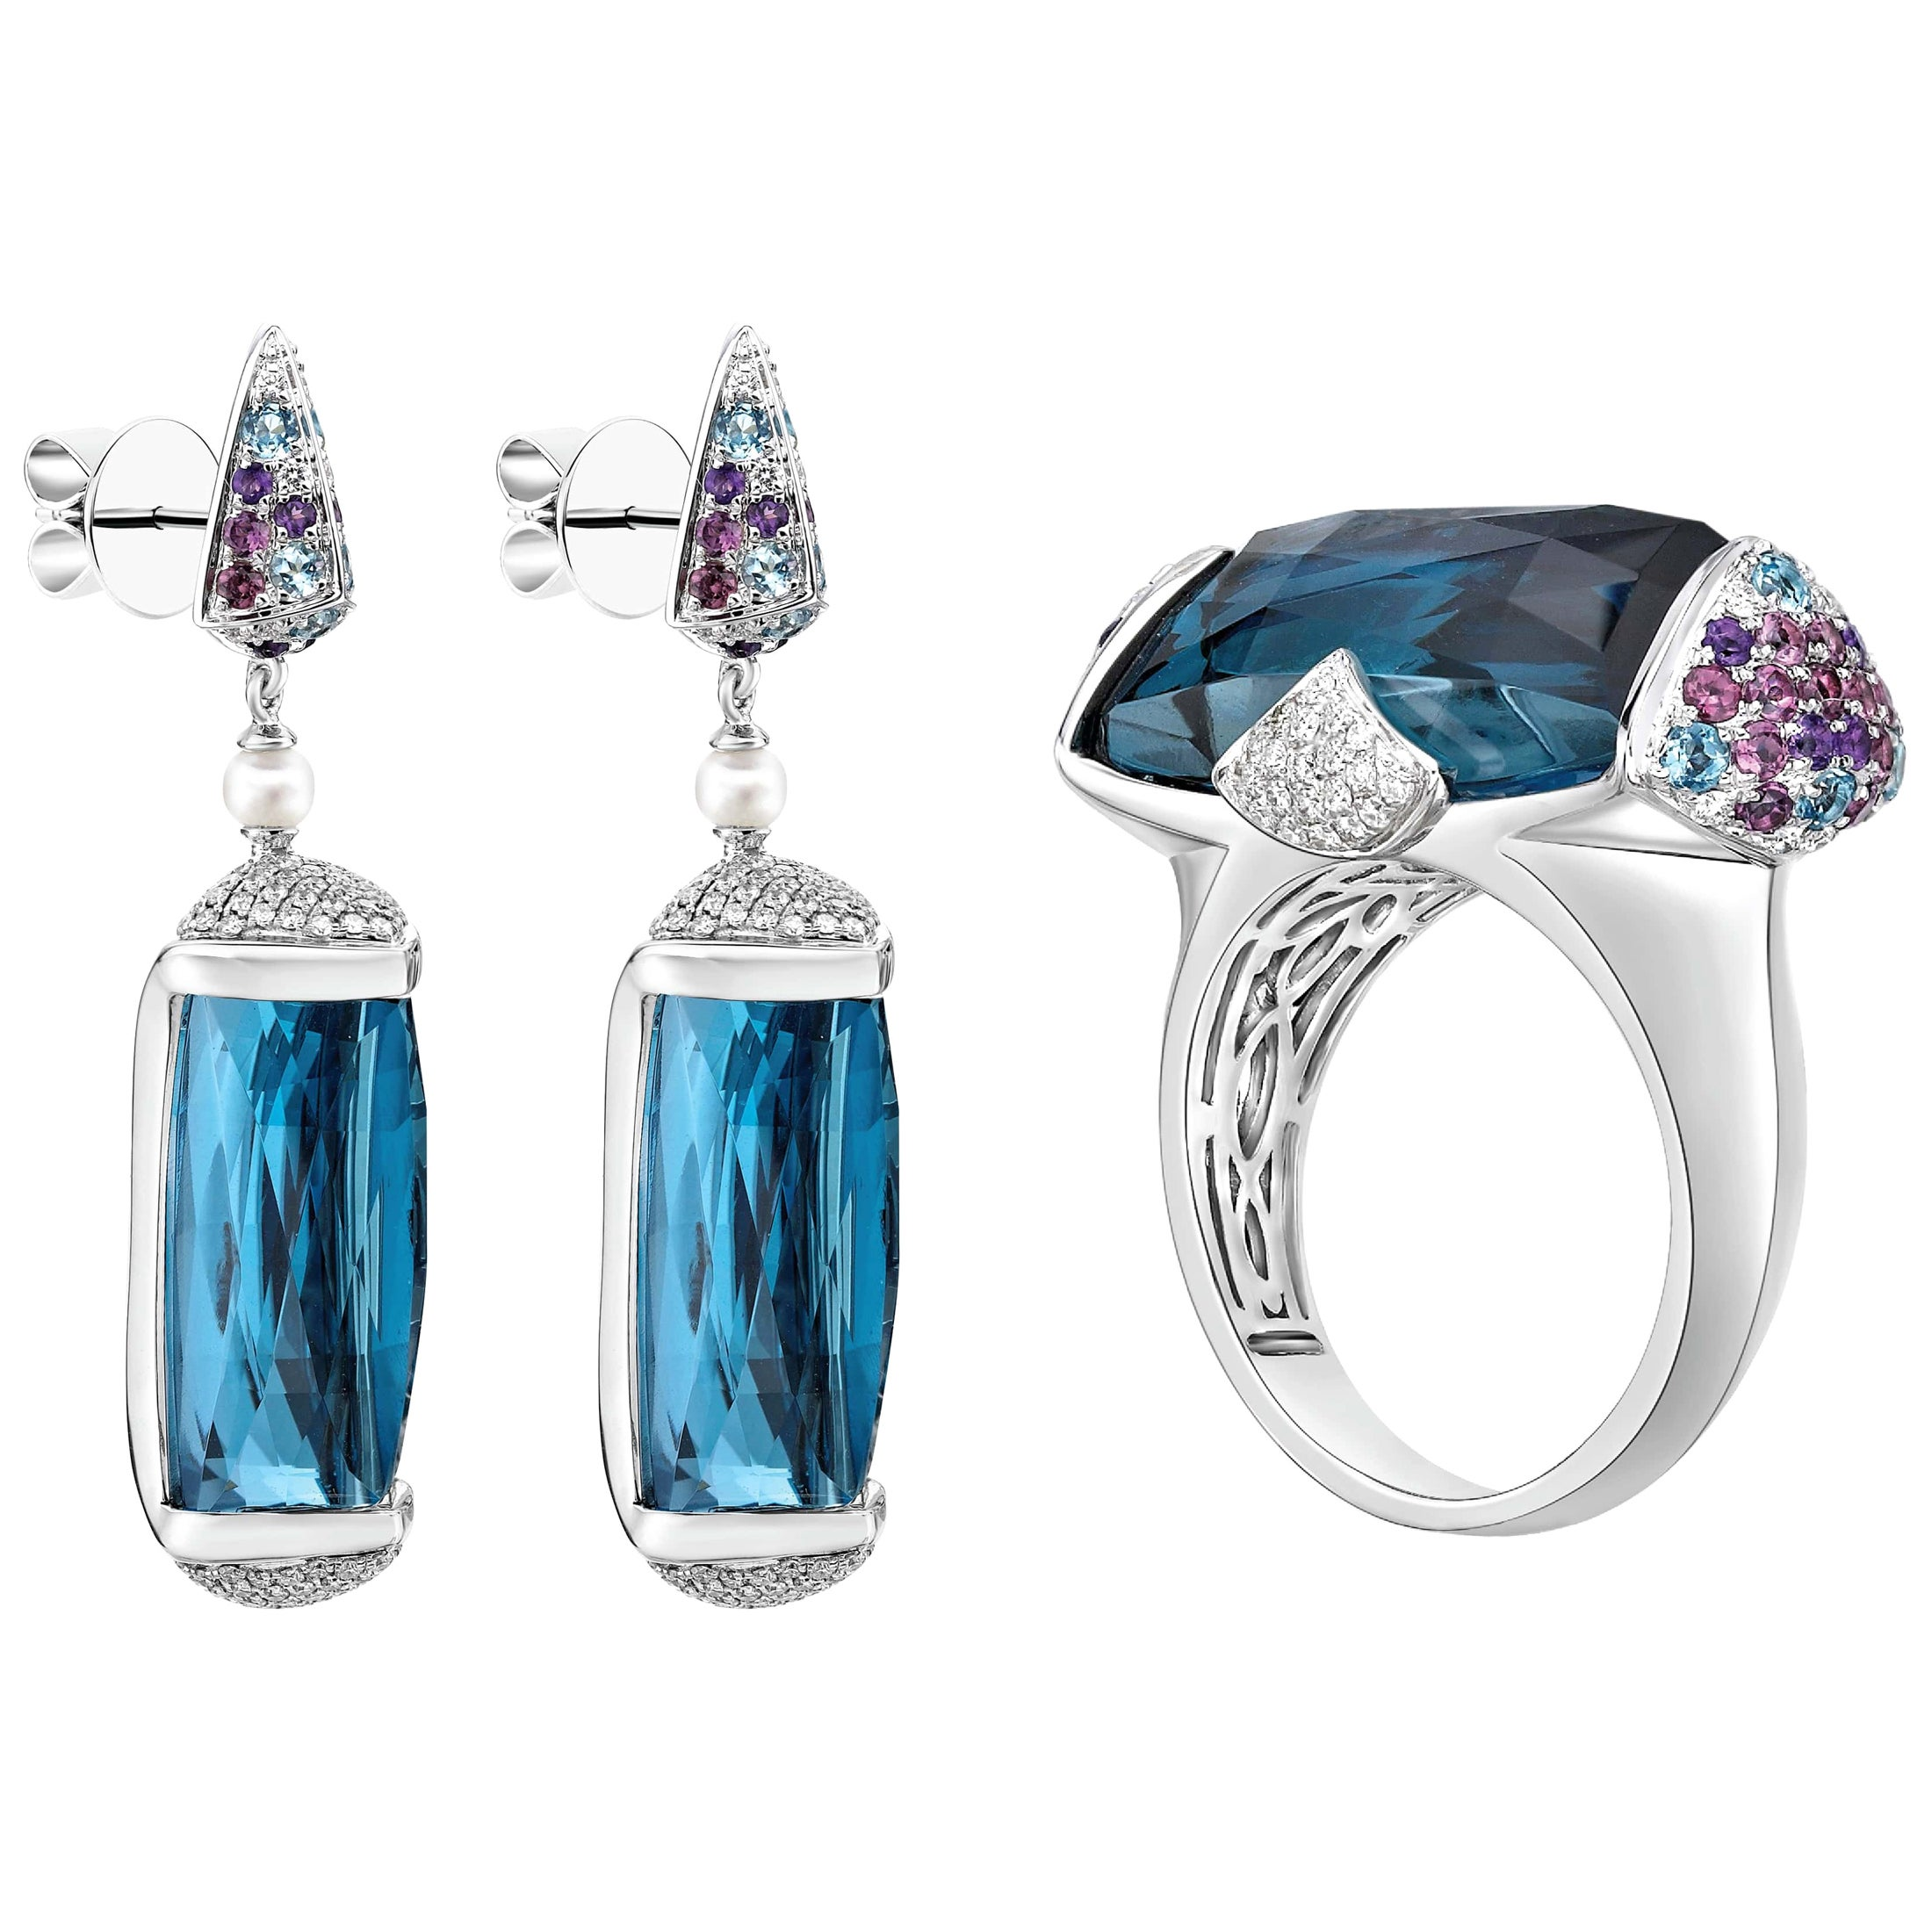 62 Carat Blue Topaz Ring and Earring Set in 18 Karat White Gold with Diamonds